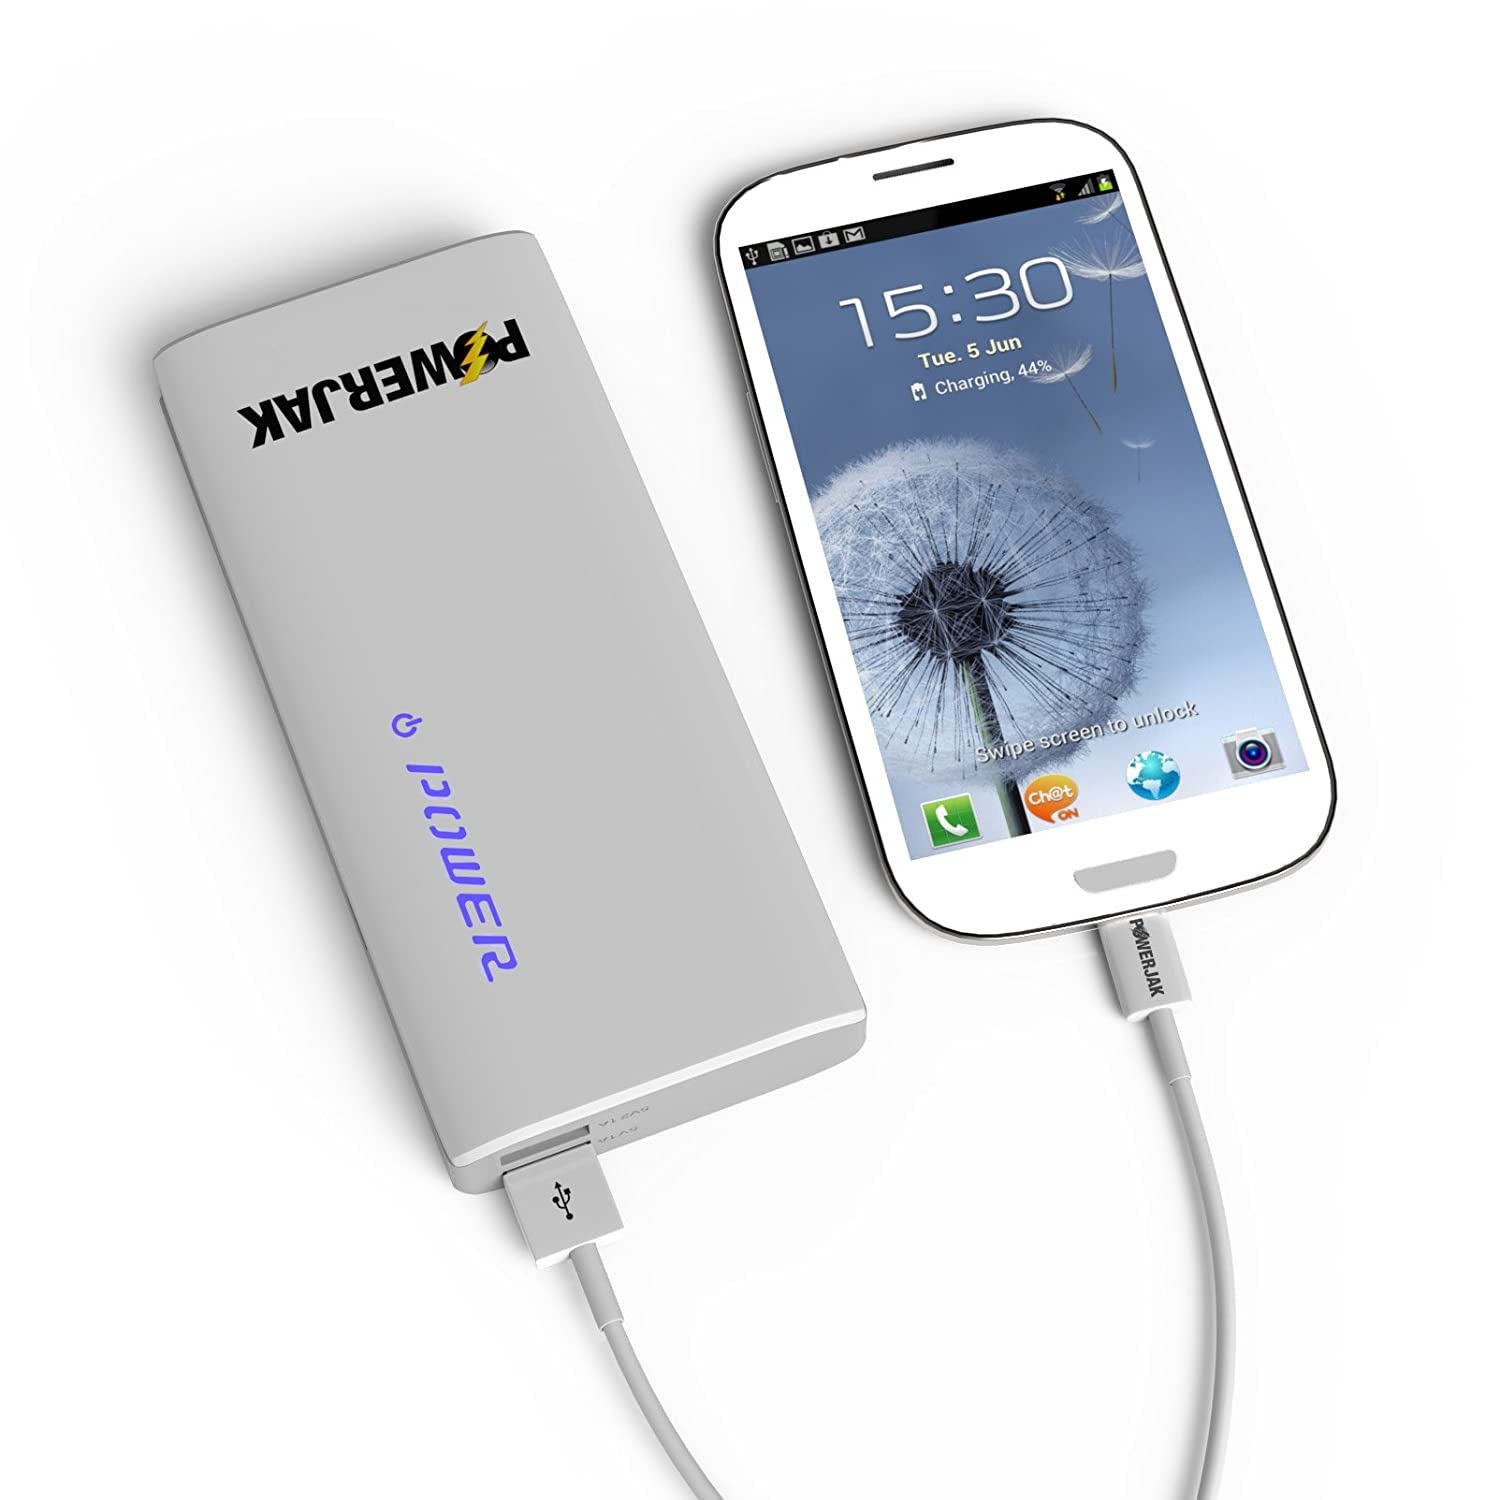 Best Portable Phone Charger Lifetime 13000mah Dual The Circuit Adapter Charge Mobile Phones Battery Usb Most Powerful Cell Chargers For Devices Backup